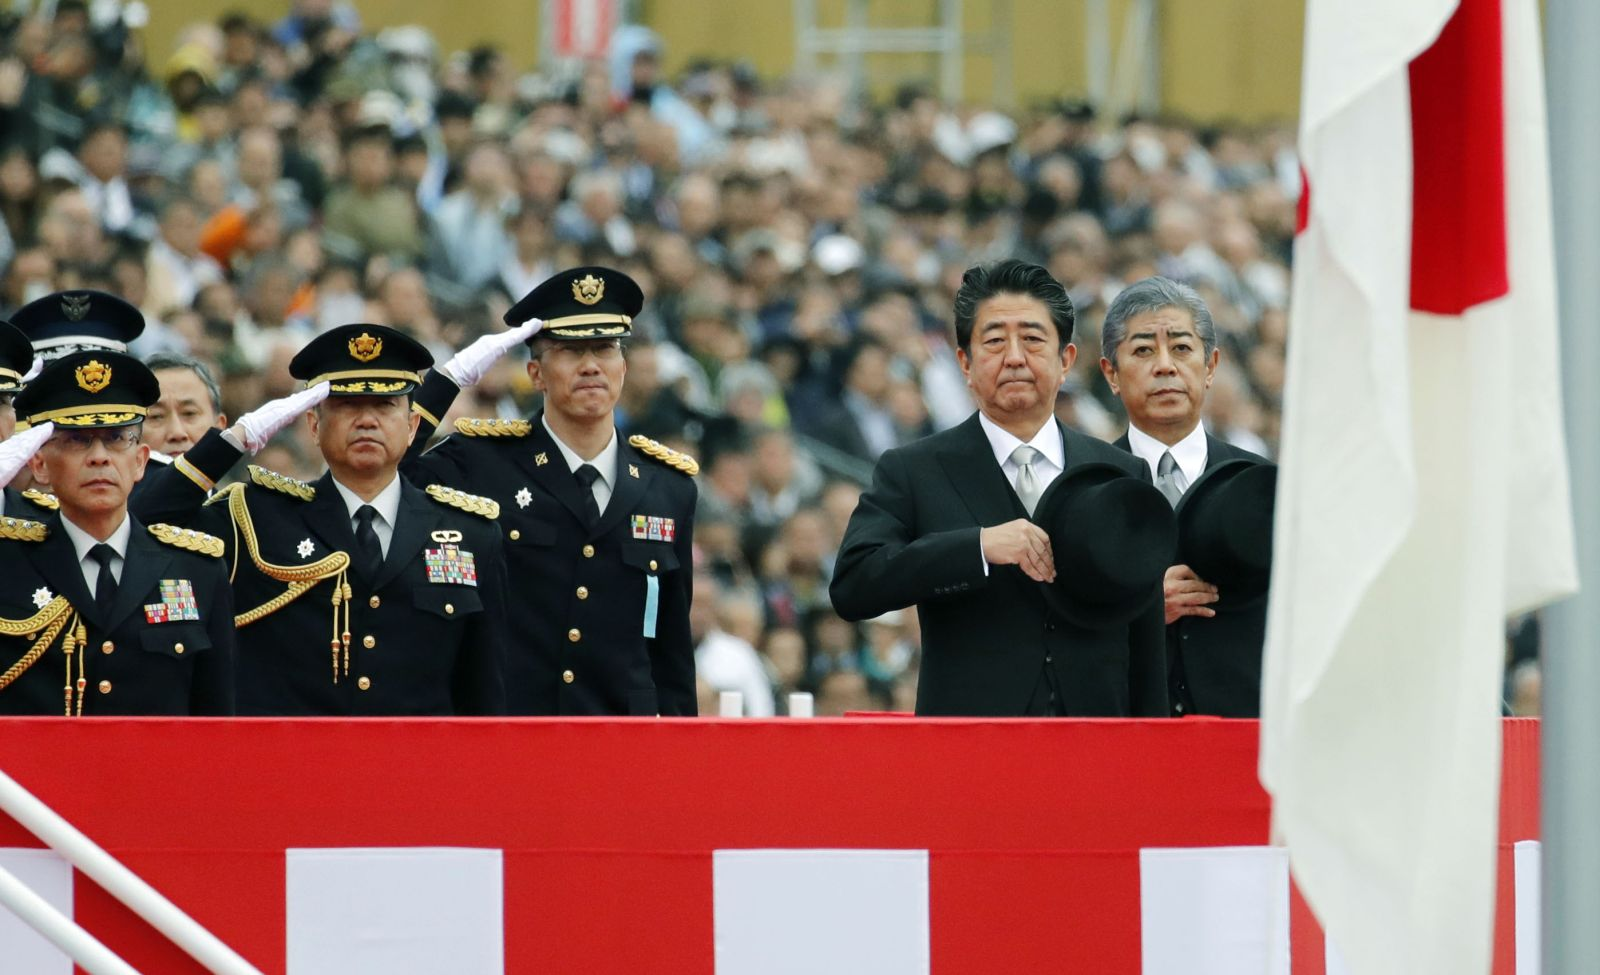 On PM Abe's Third Term, It's Time to Enact the Anti-Spy Law